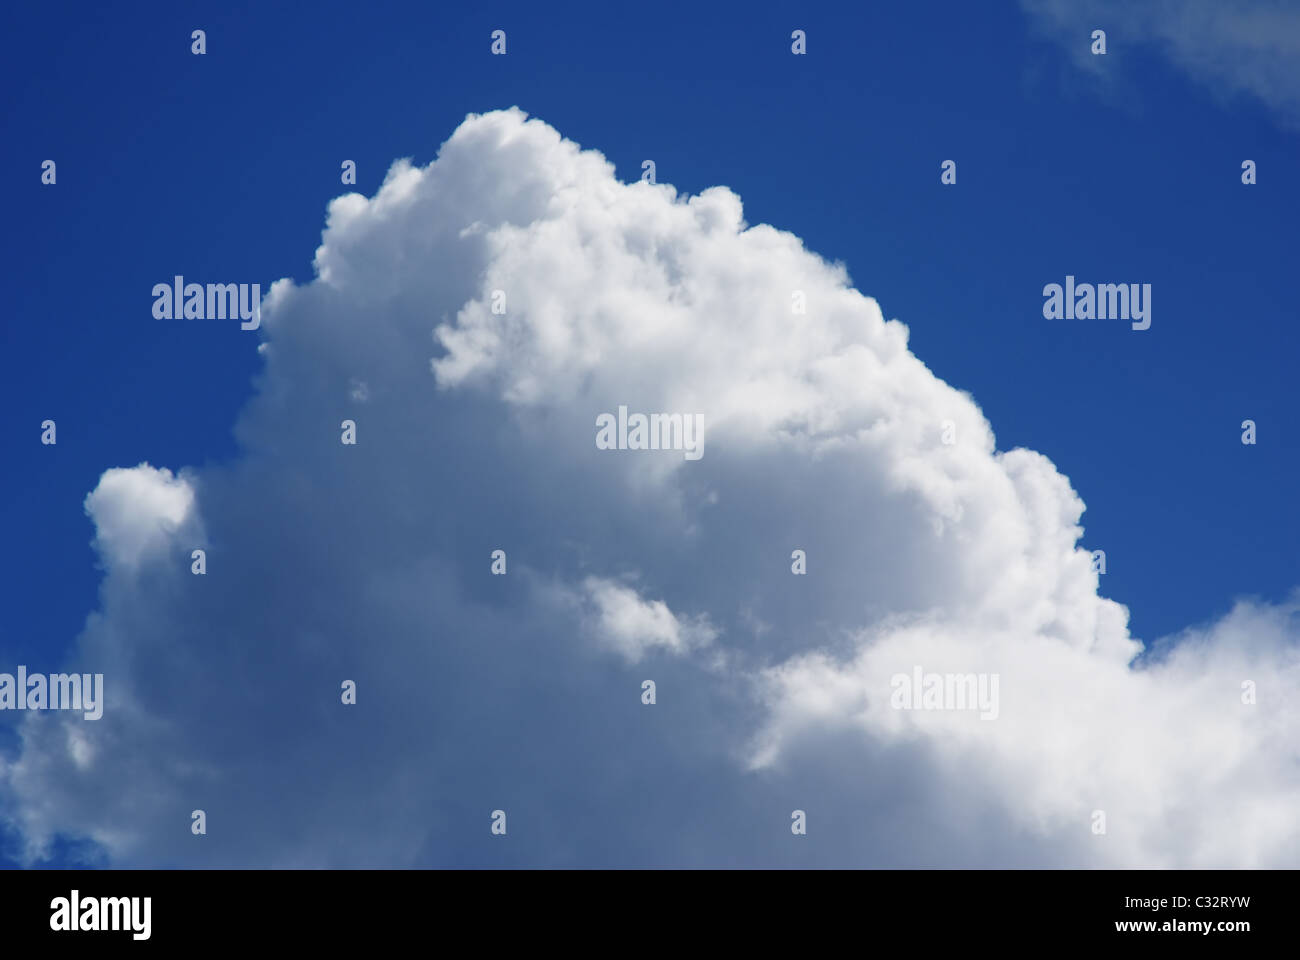 Wonderful clouds against blue sky - Stock Image